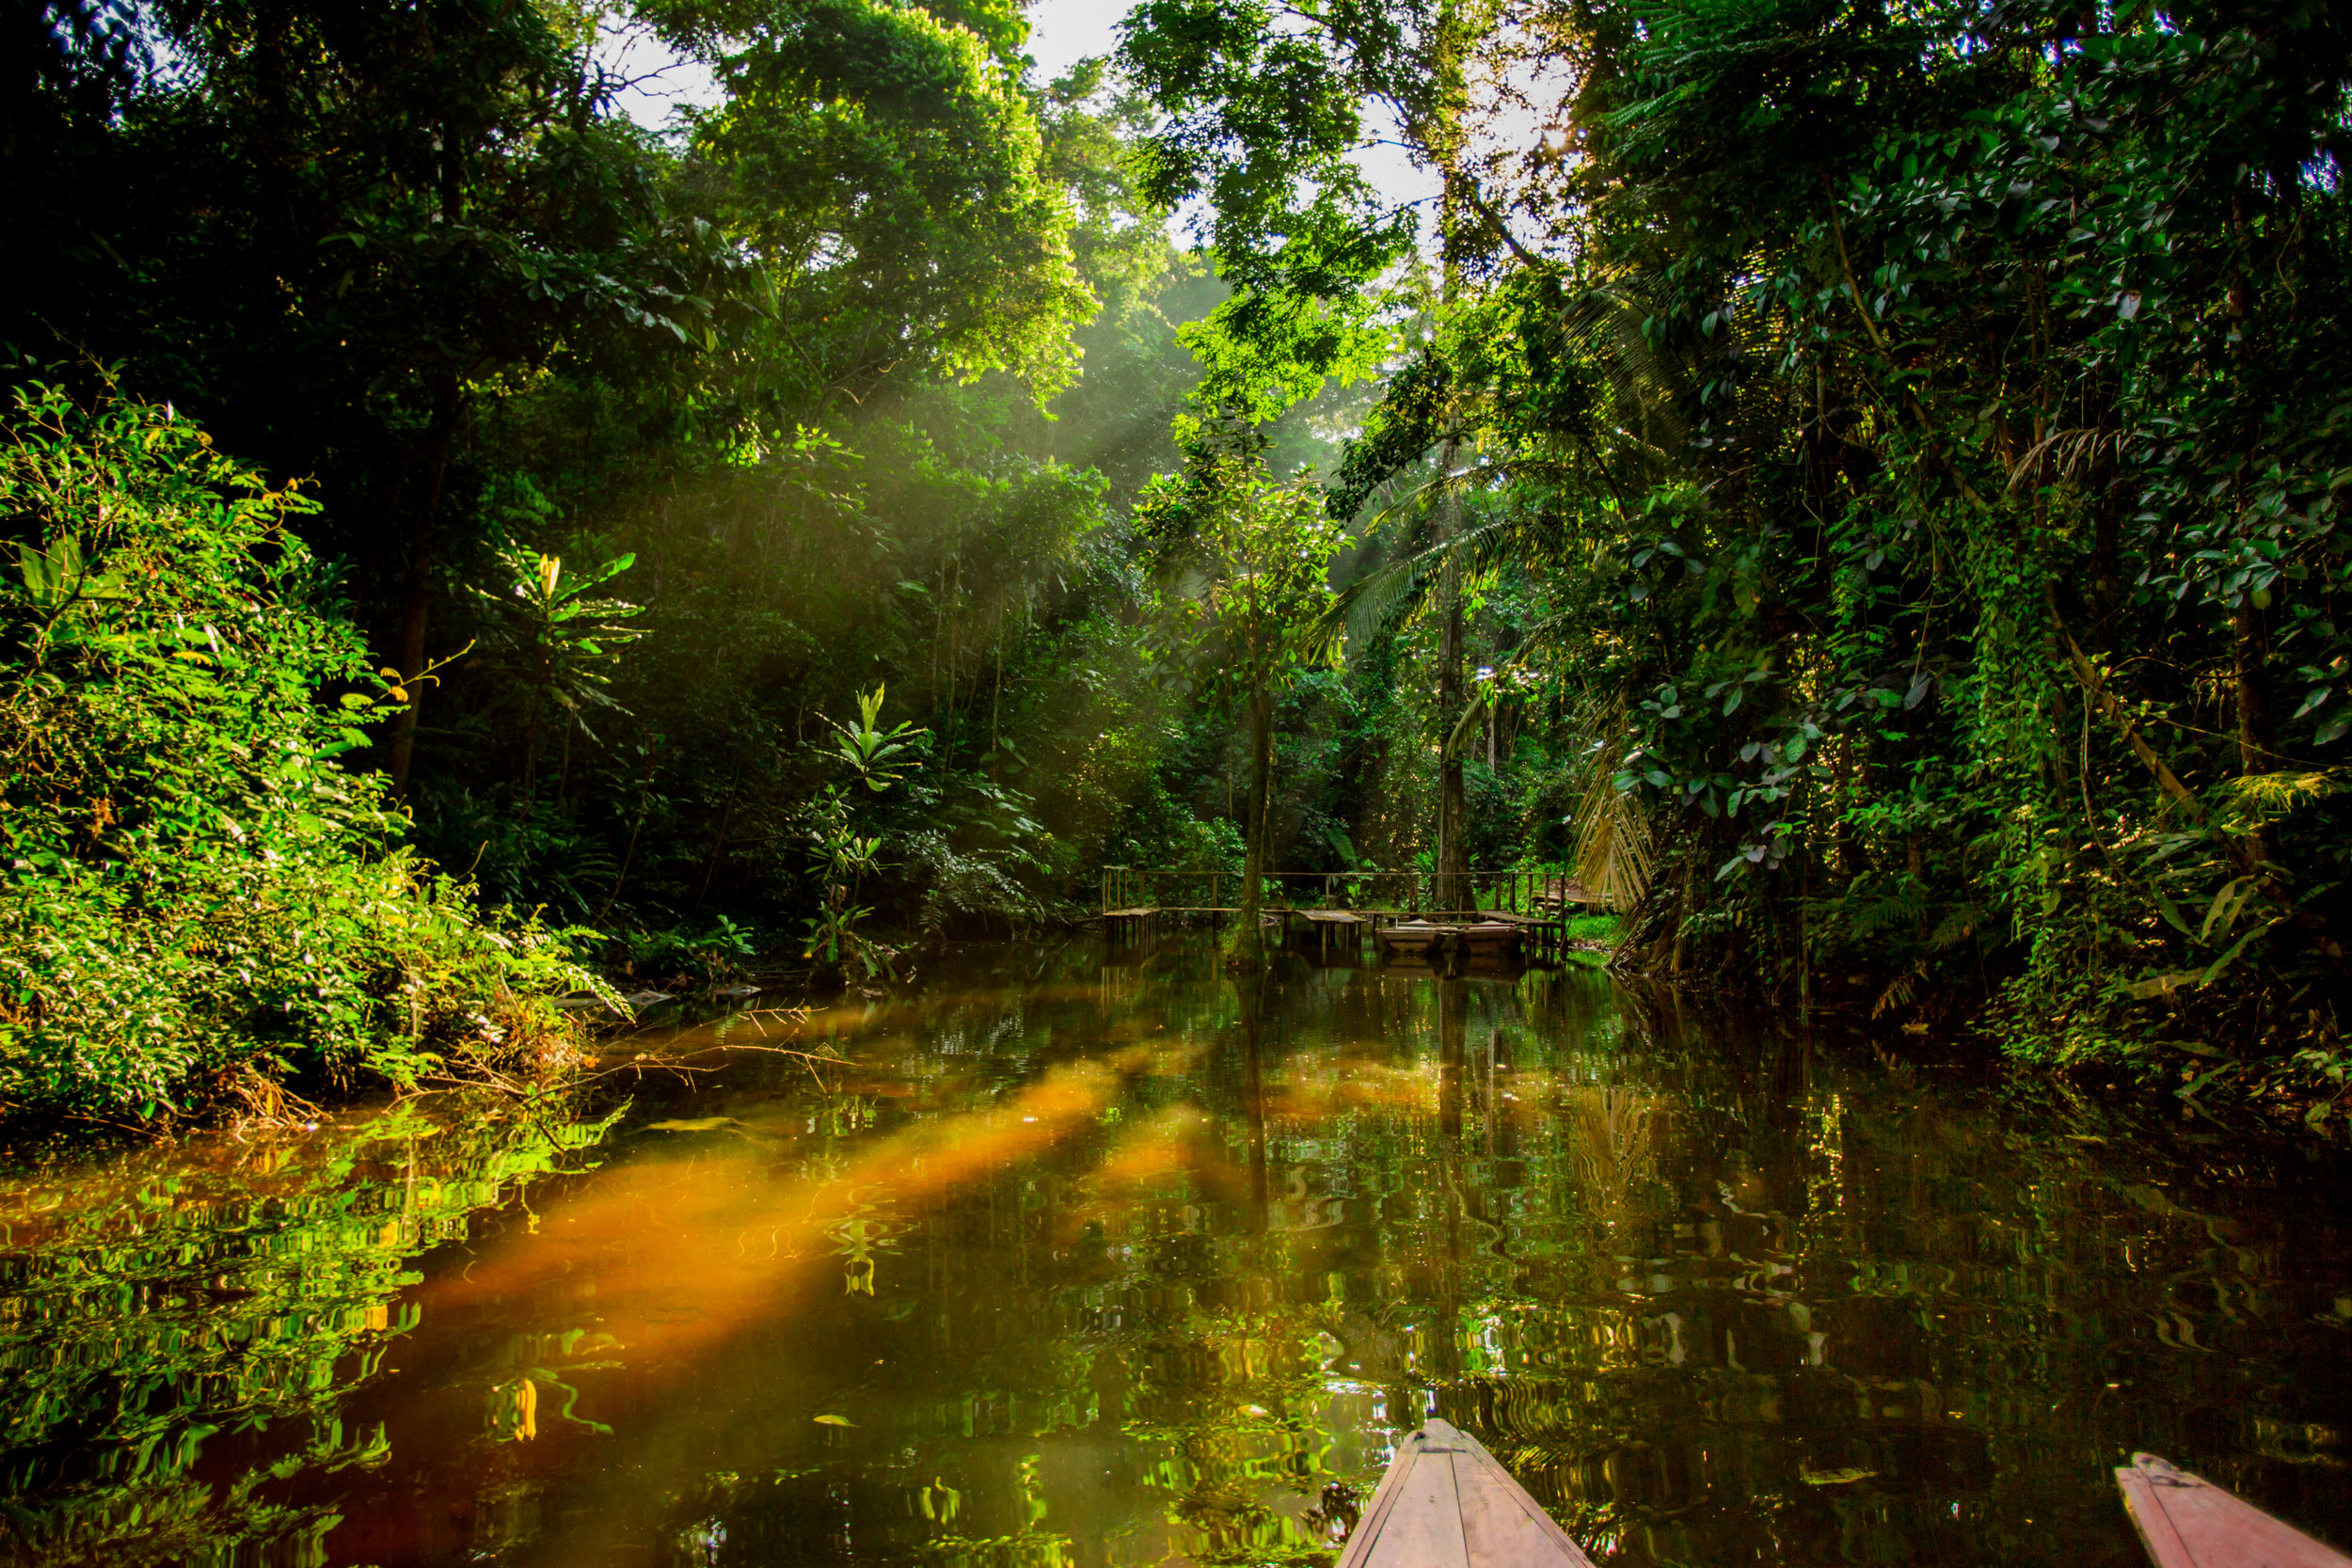 Which Is The Best Amazon Jungle Region To Visit In Peru